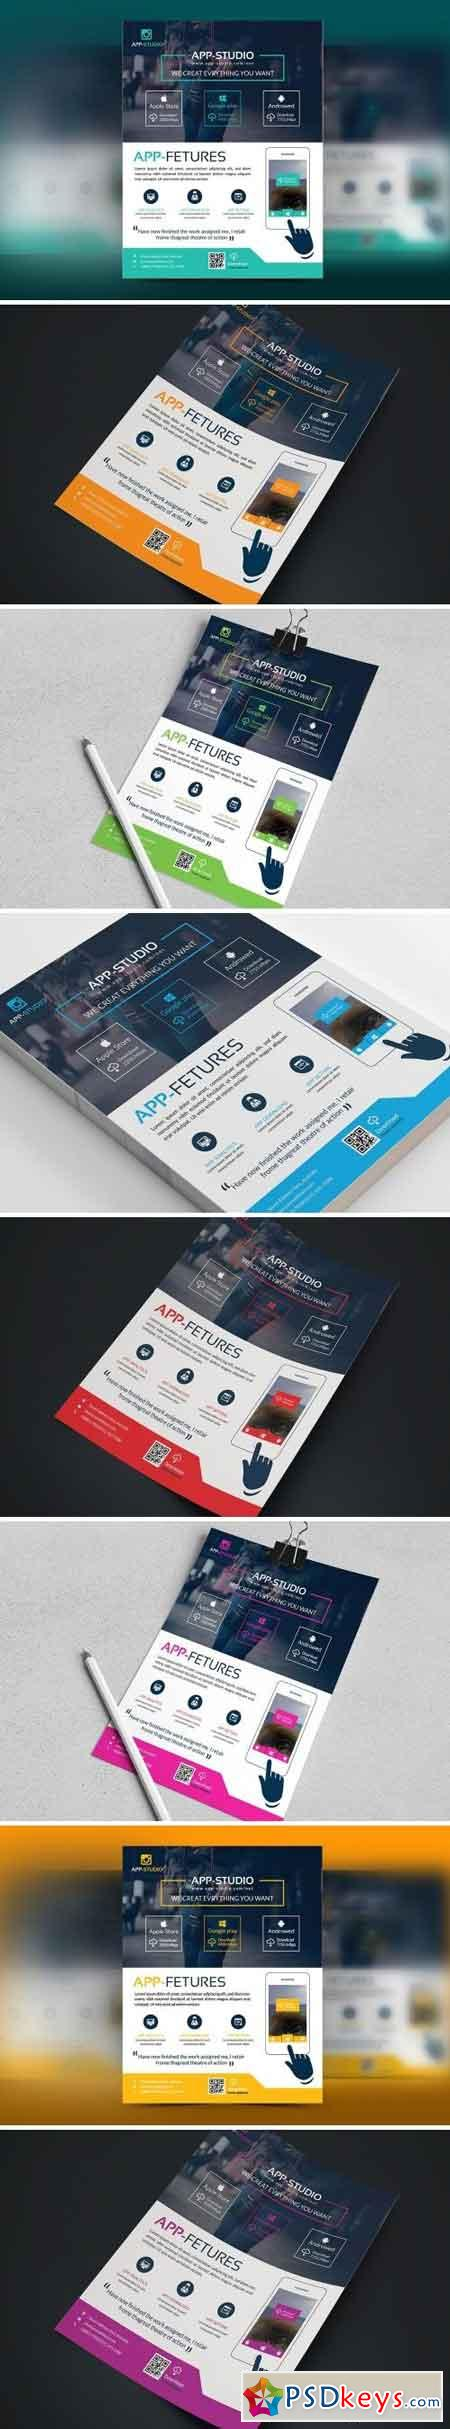 Mobile App Apps Business Flyer 1677280